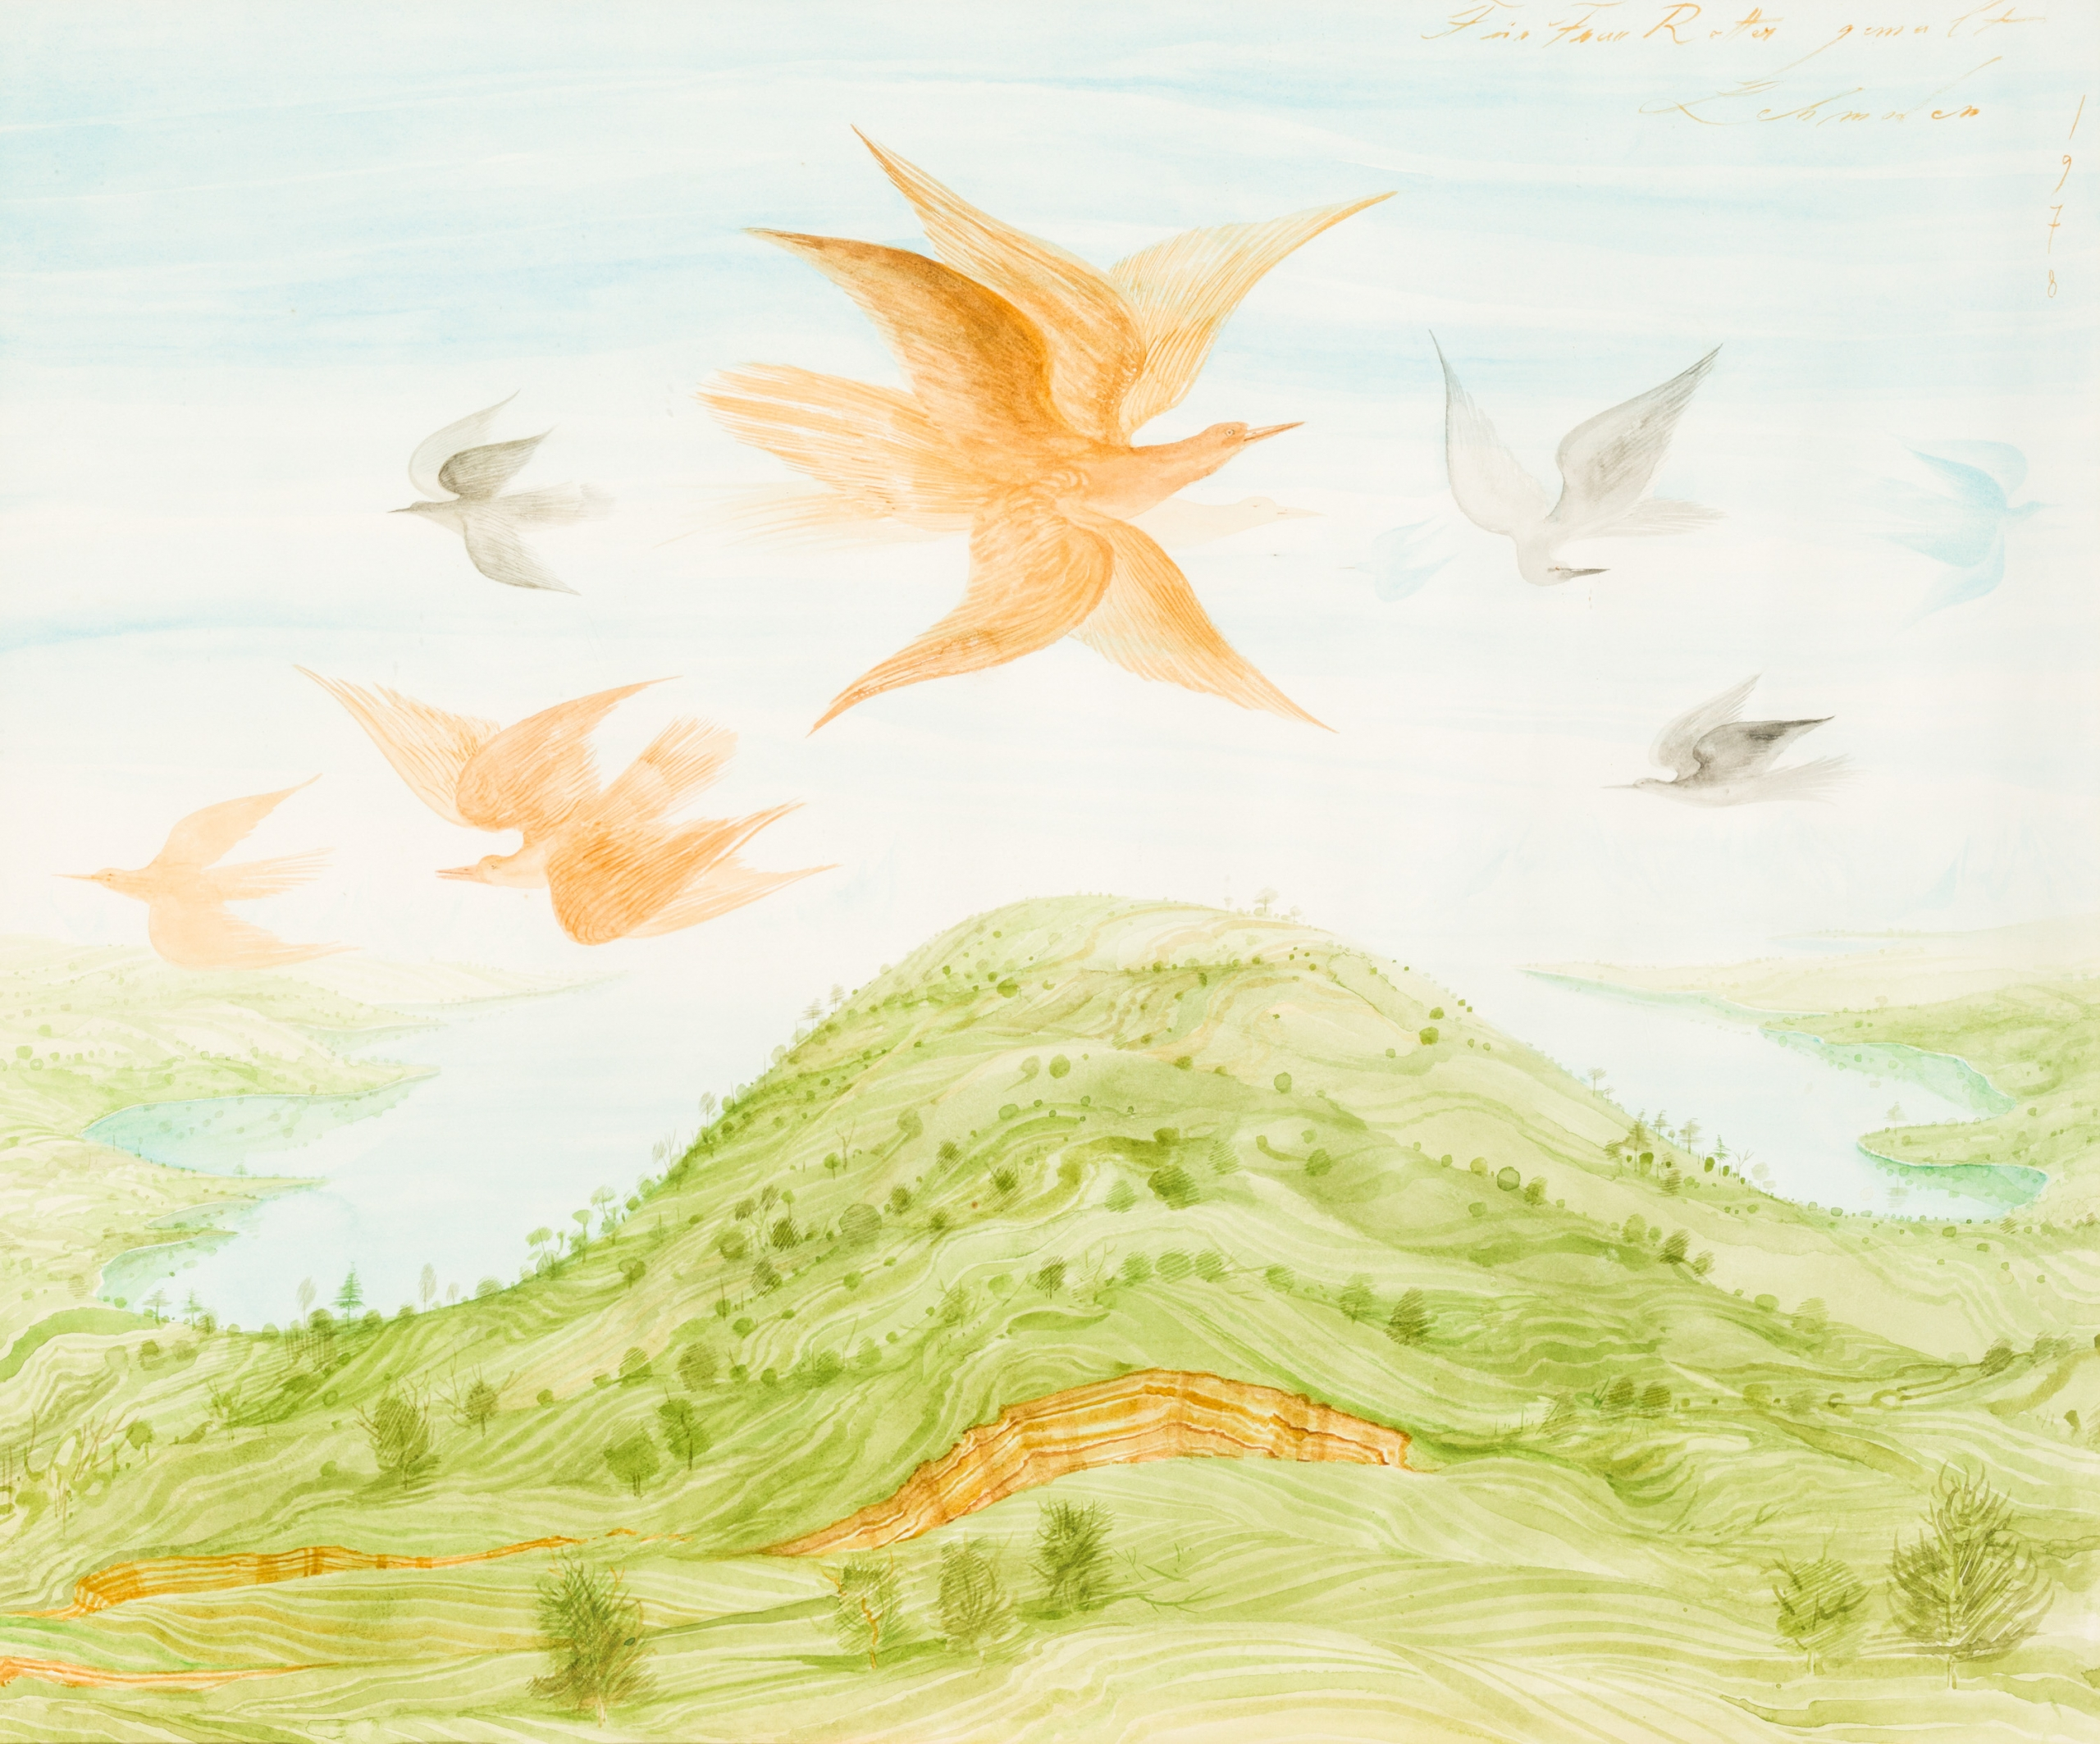 Anton Lehmden, Ohne Titel (Vogelflug) / untitled (flight of birds)